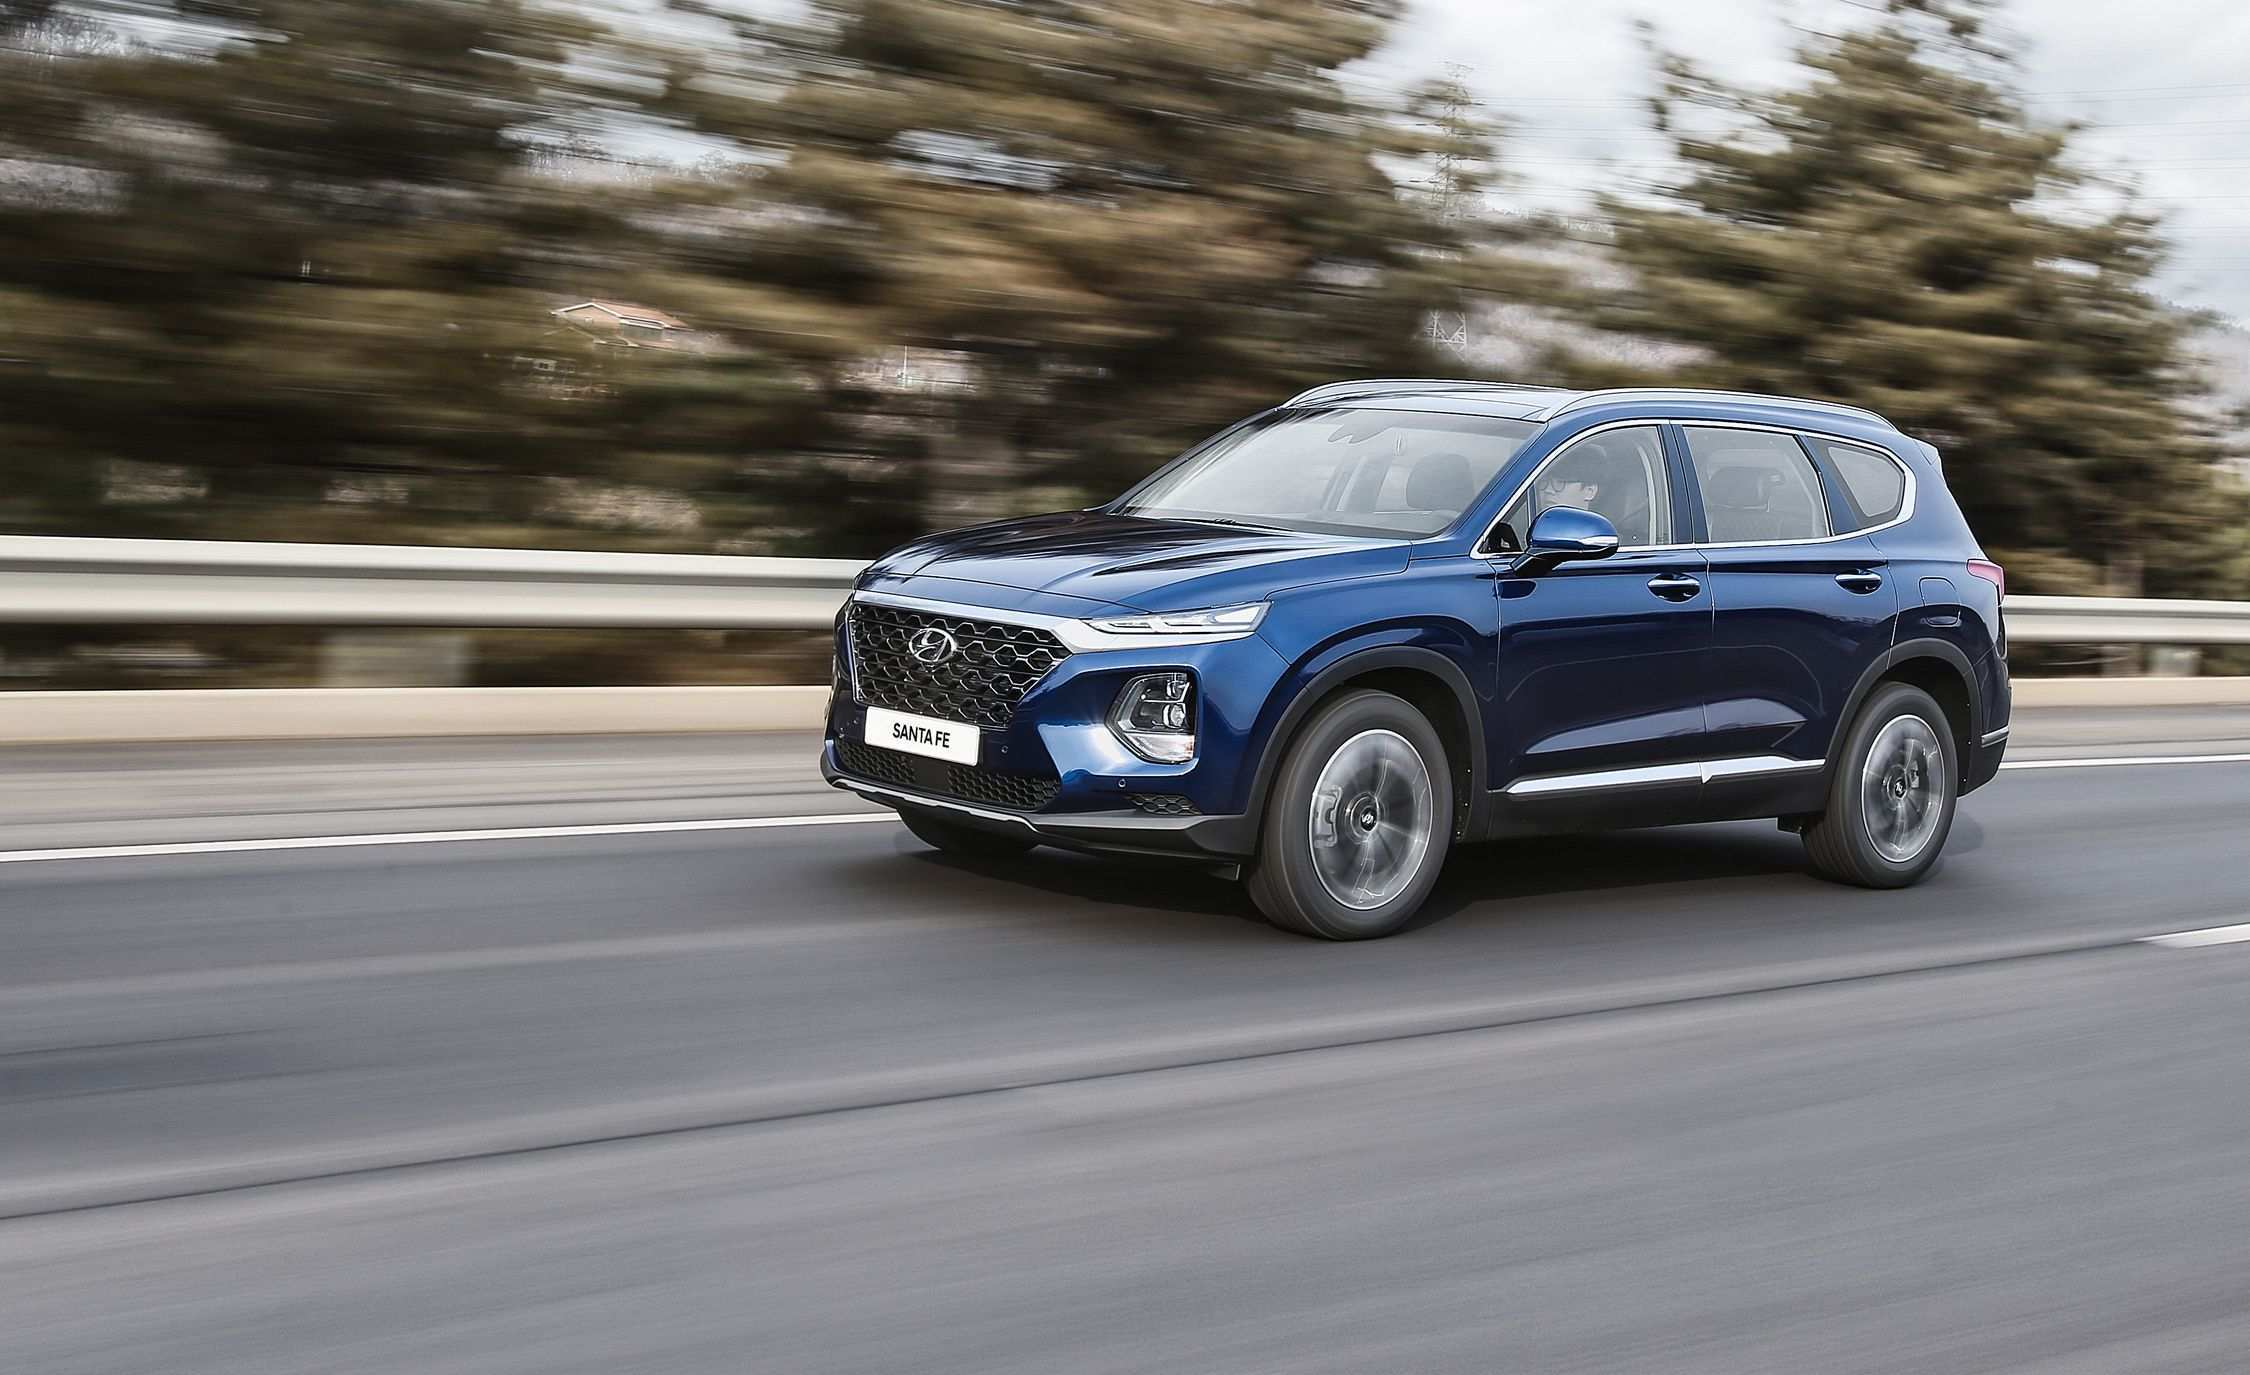 45 New 2019 Hyundai Santa Fe Engine History for 2019 Hyundai Santa Fe Engine